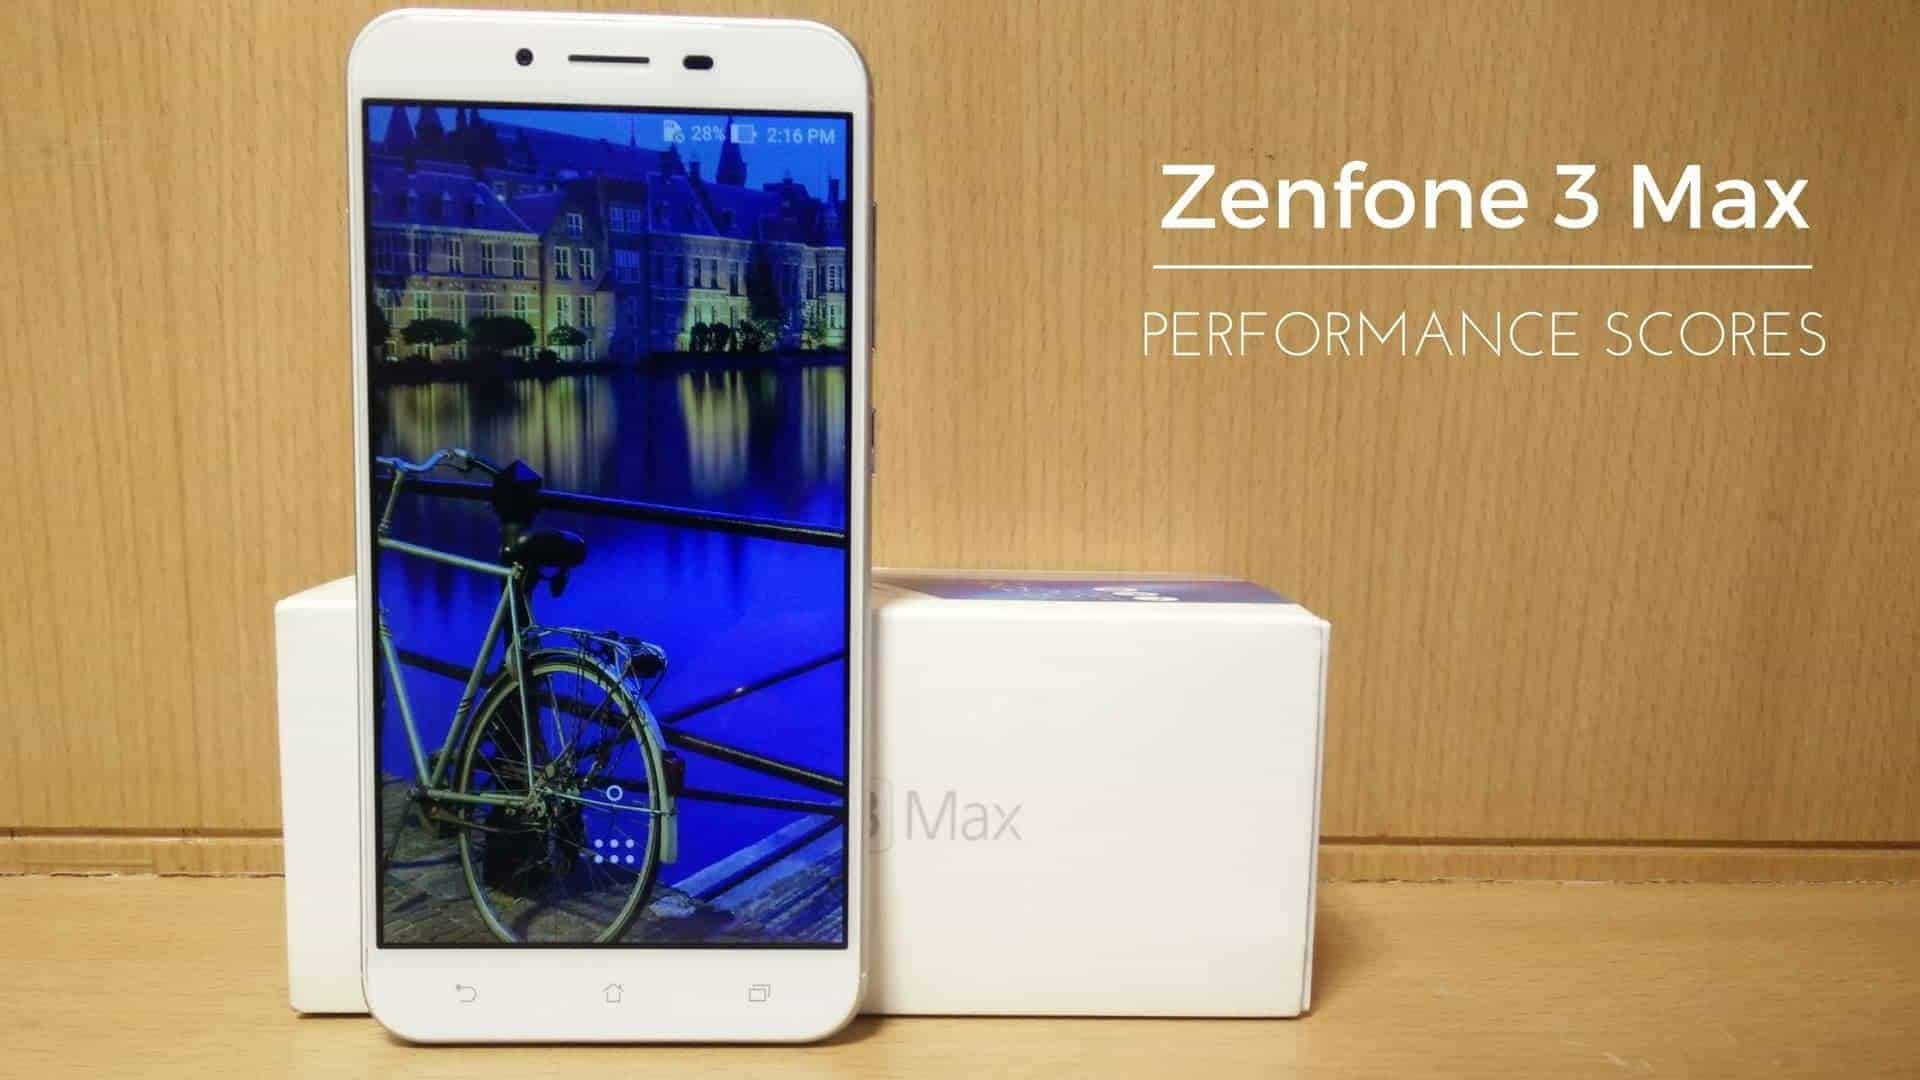 Zenfone 3 performance